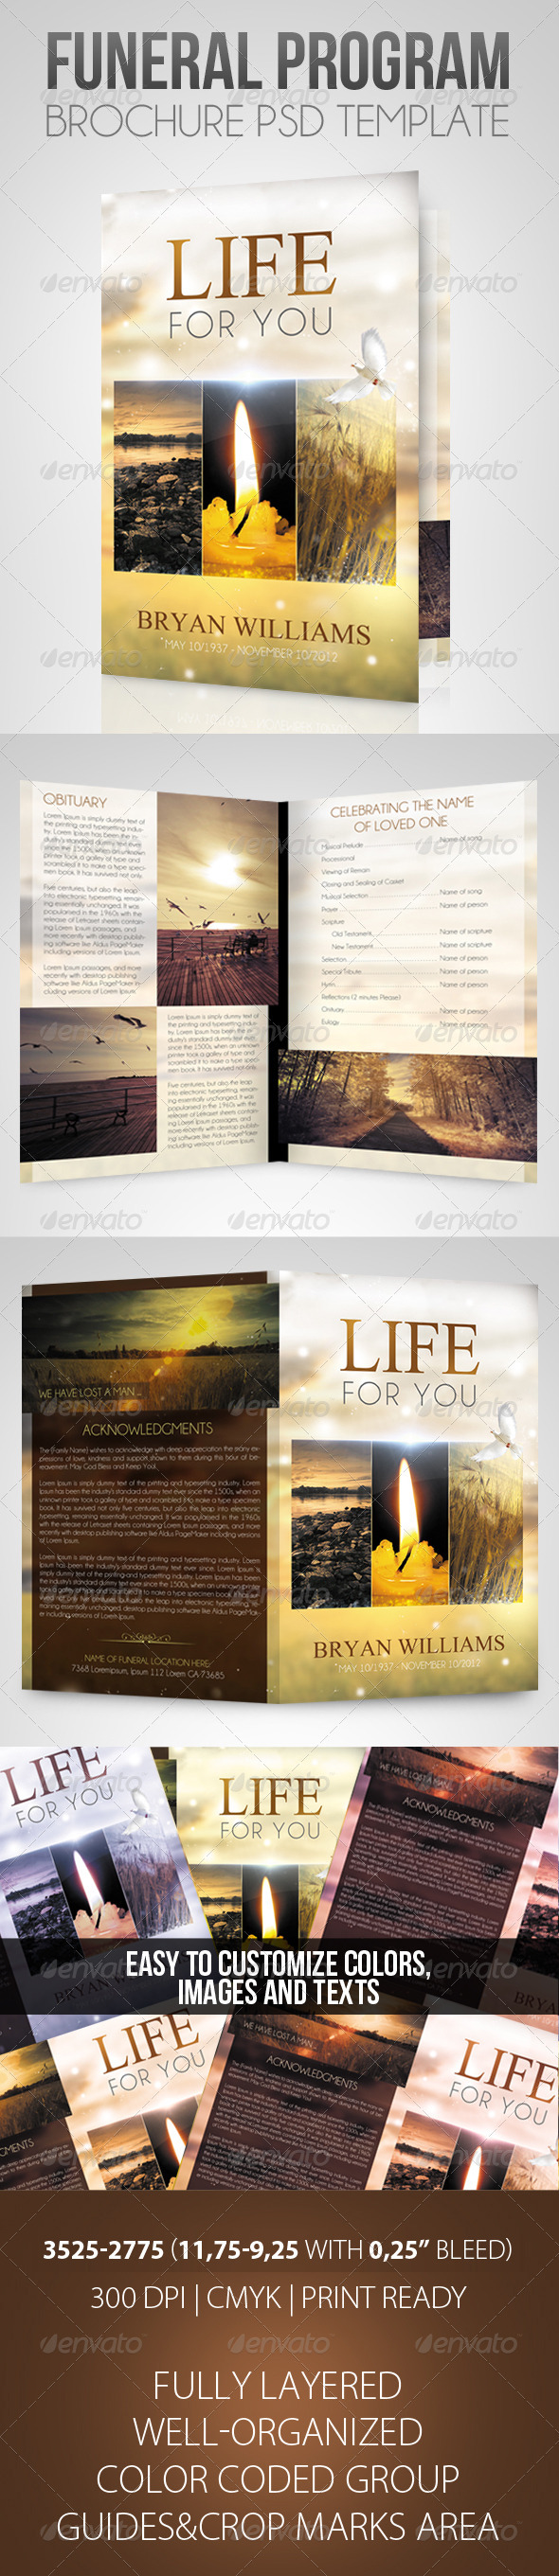 Life for you - Funeral Program Brochure Template - Brochures Print Templates